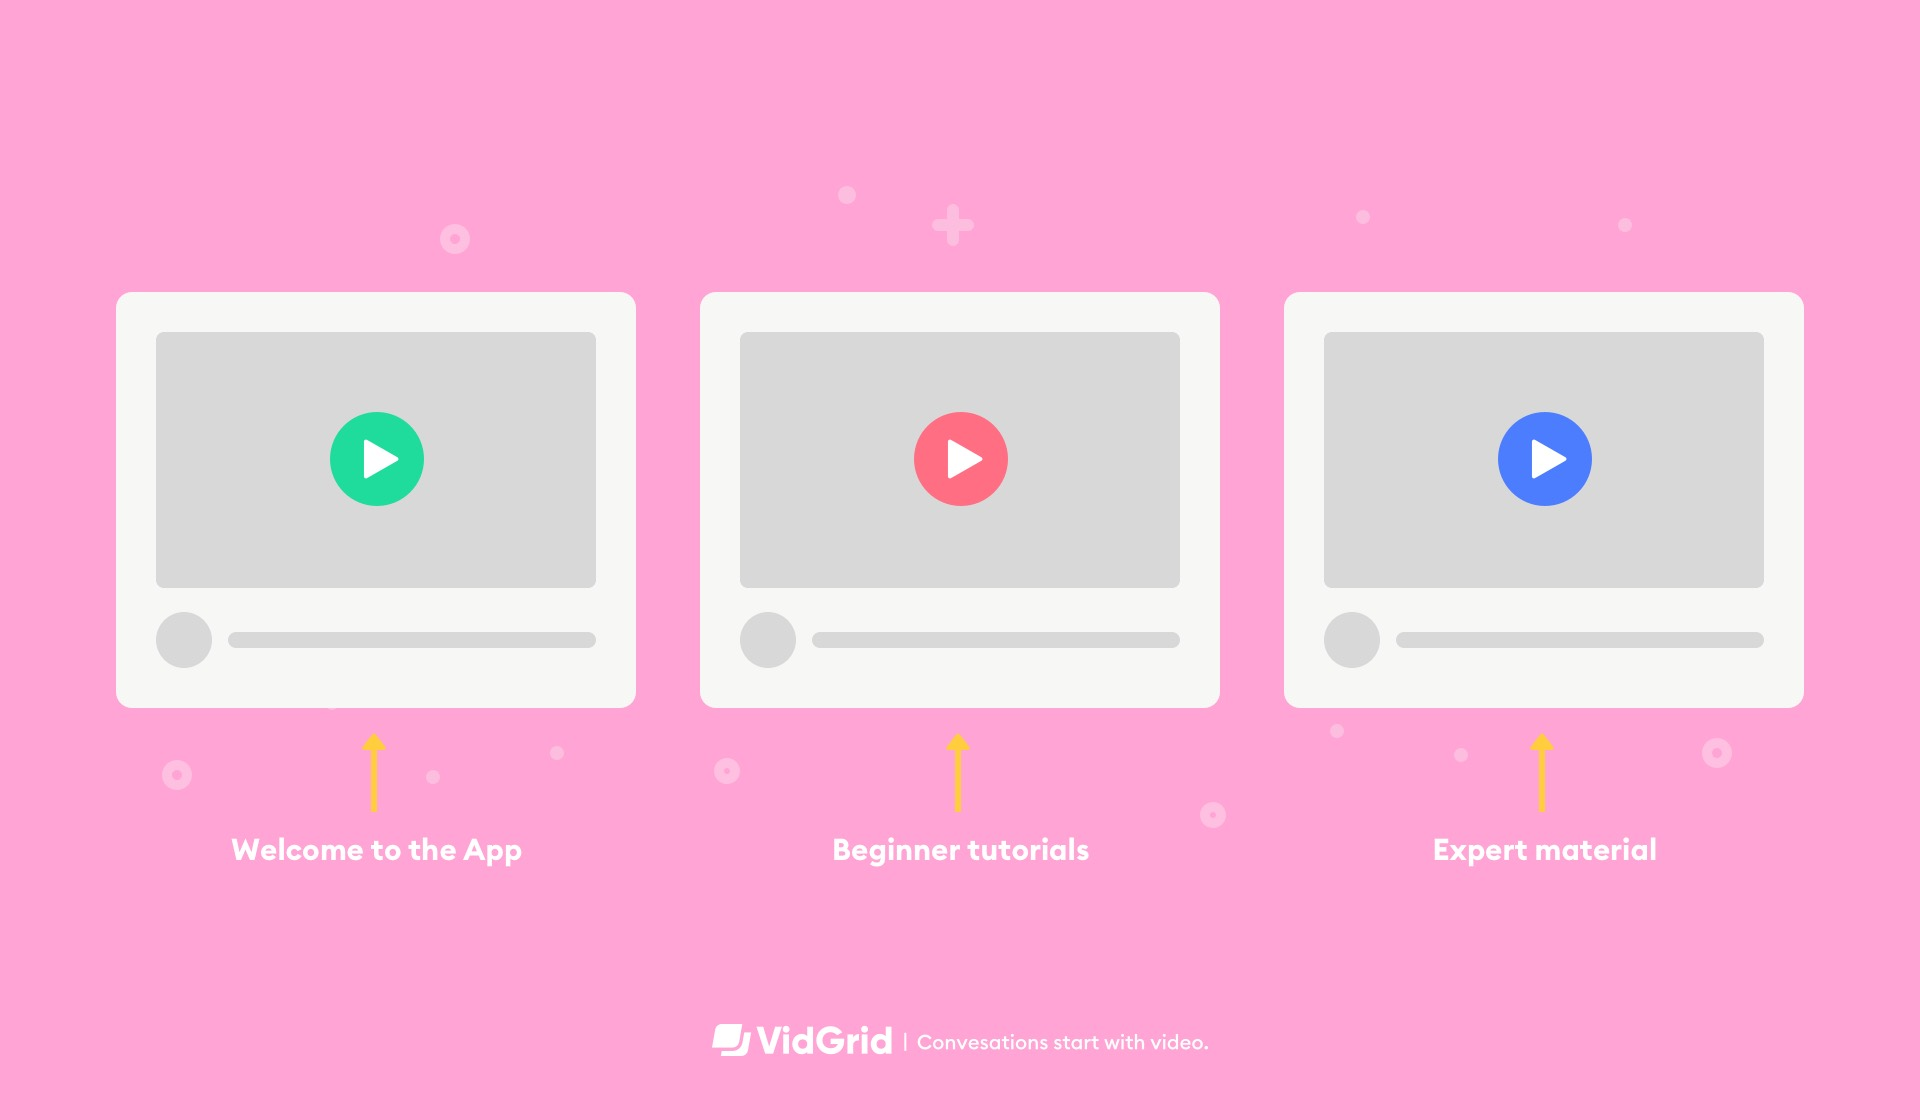 Video Onboarding for New Customers